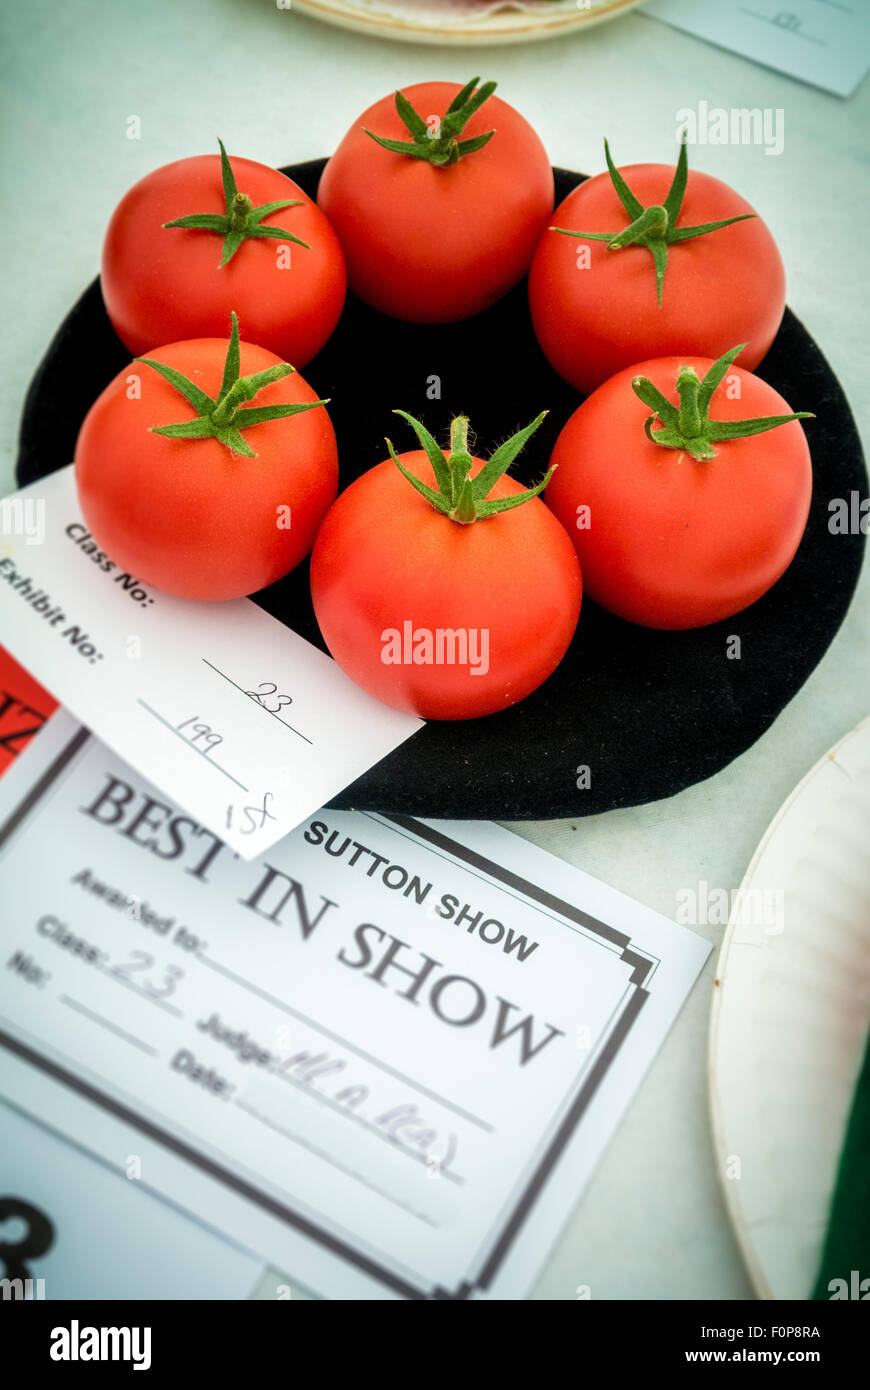 Best in show award for tomatoes at country show - Stock Image